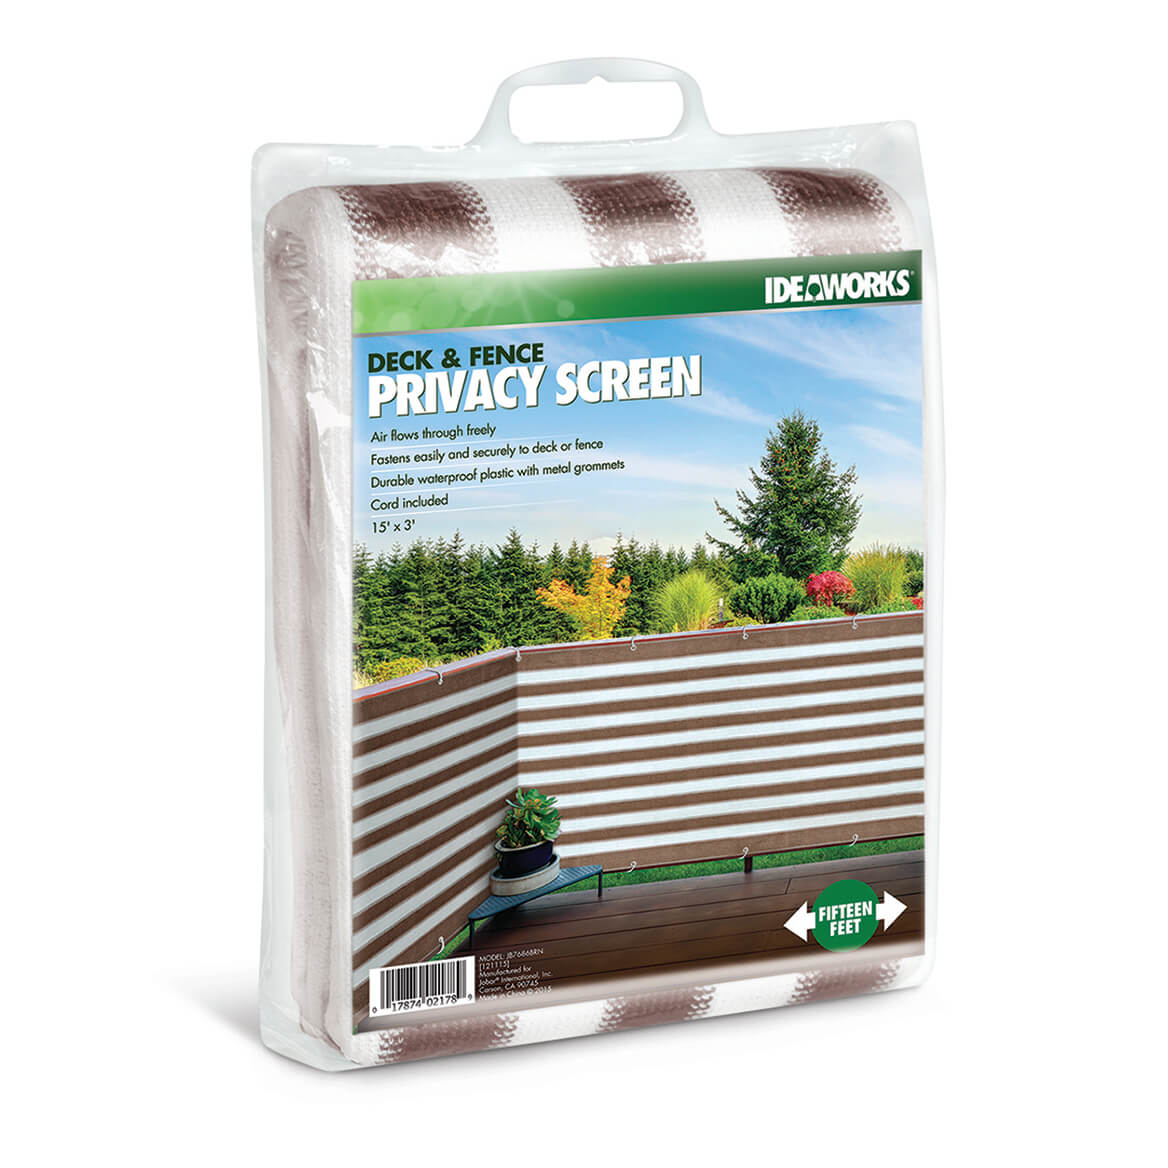 Brown and White Striped Deck & Fence Privacy Screen-364576